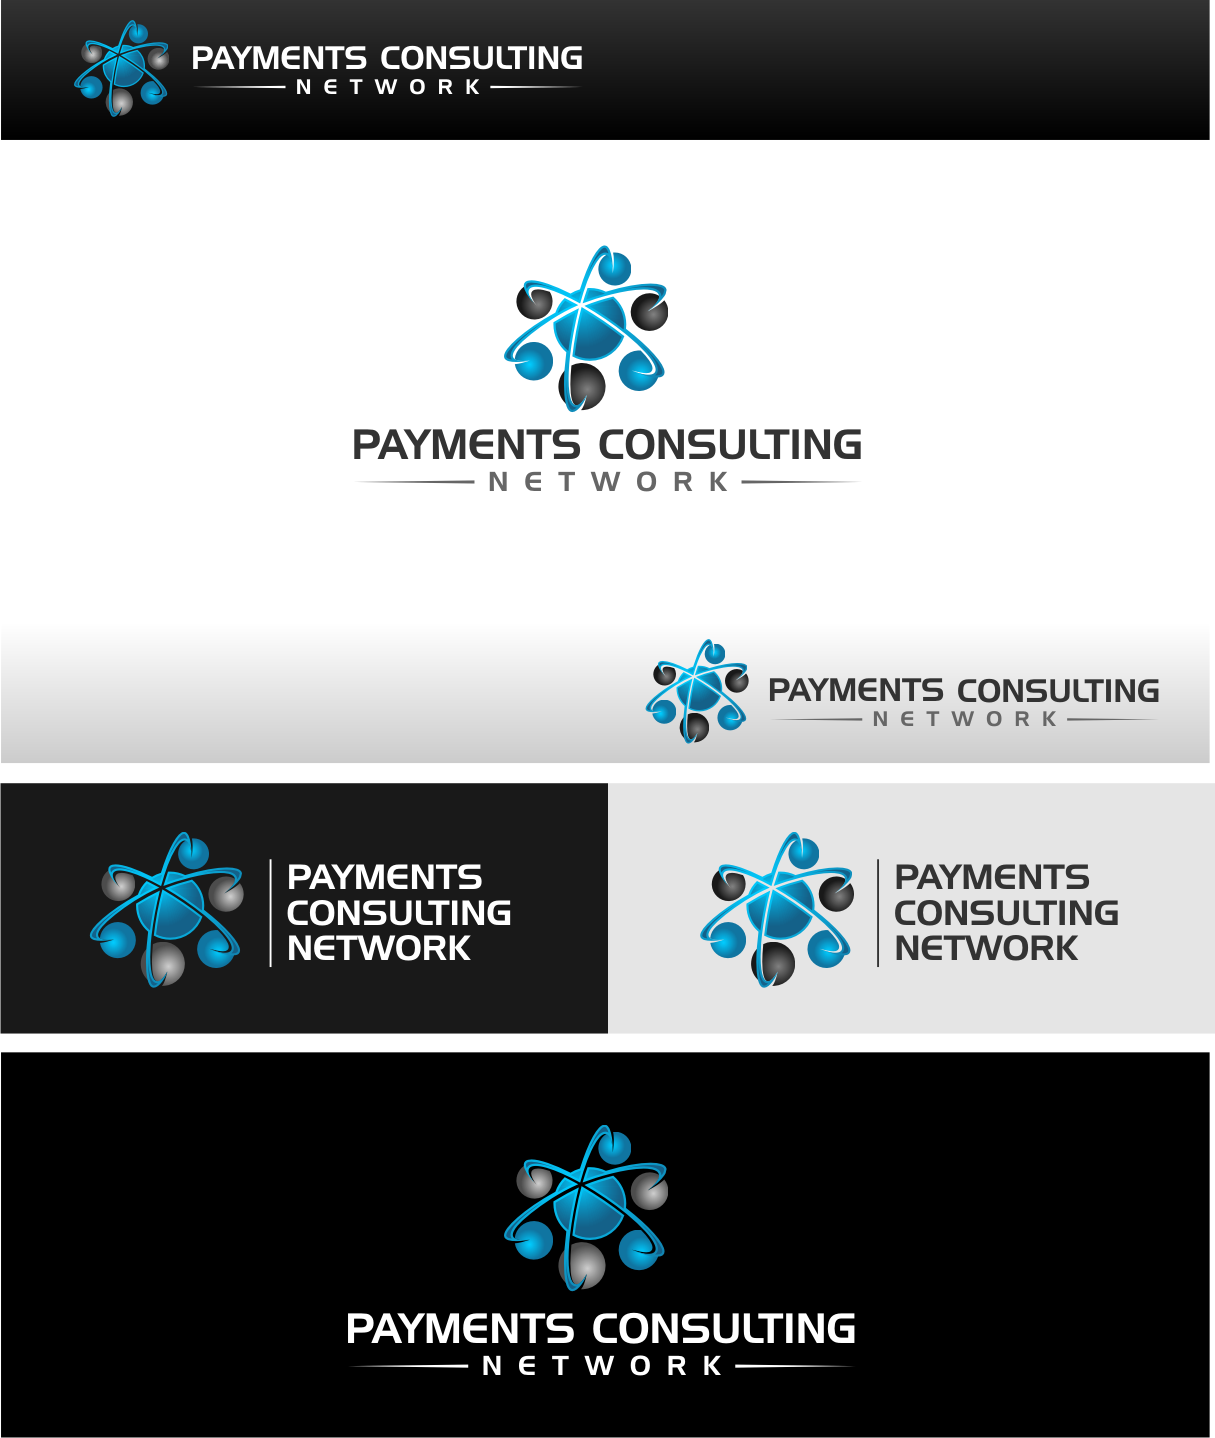 Payments Consulting Network needs a new logo